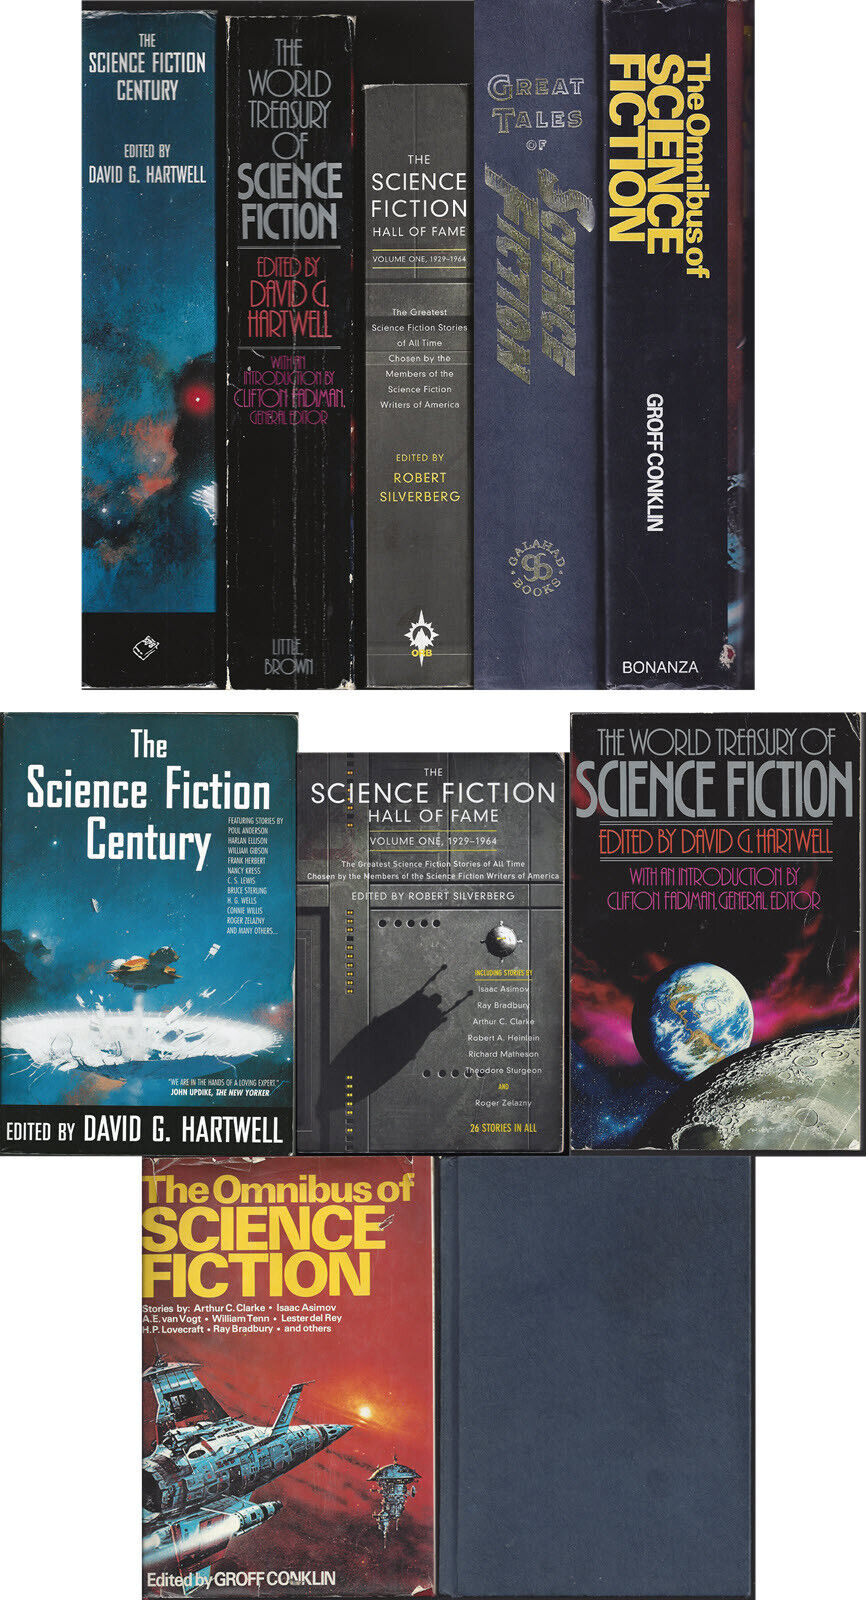 LOT OF FIVE LARGE SCIENCE FICTION ANTHOLOGY BOOKS 3700 Pages Used - $20.00